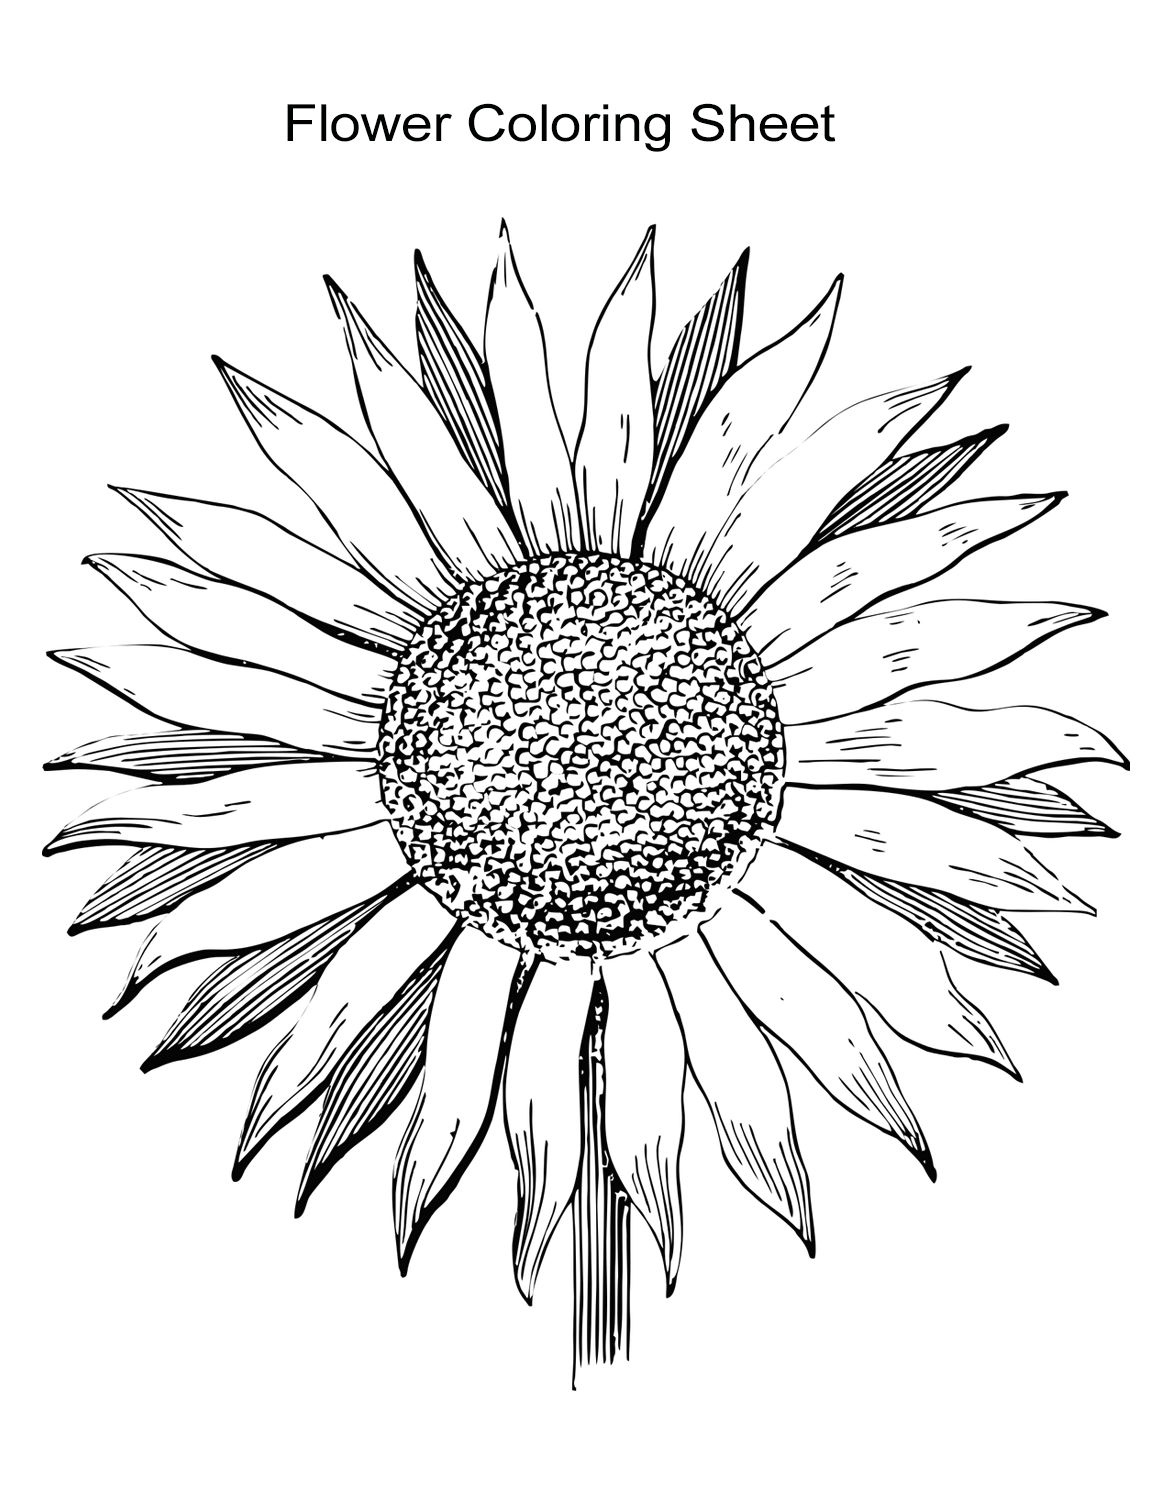 flower coloring pages for girls beautiful flower coloring pages with delicate forms of flower pages for coloring girls